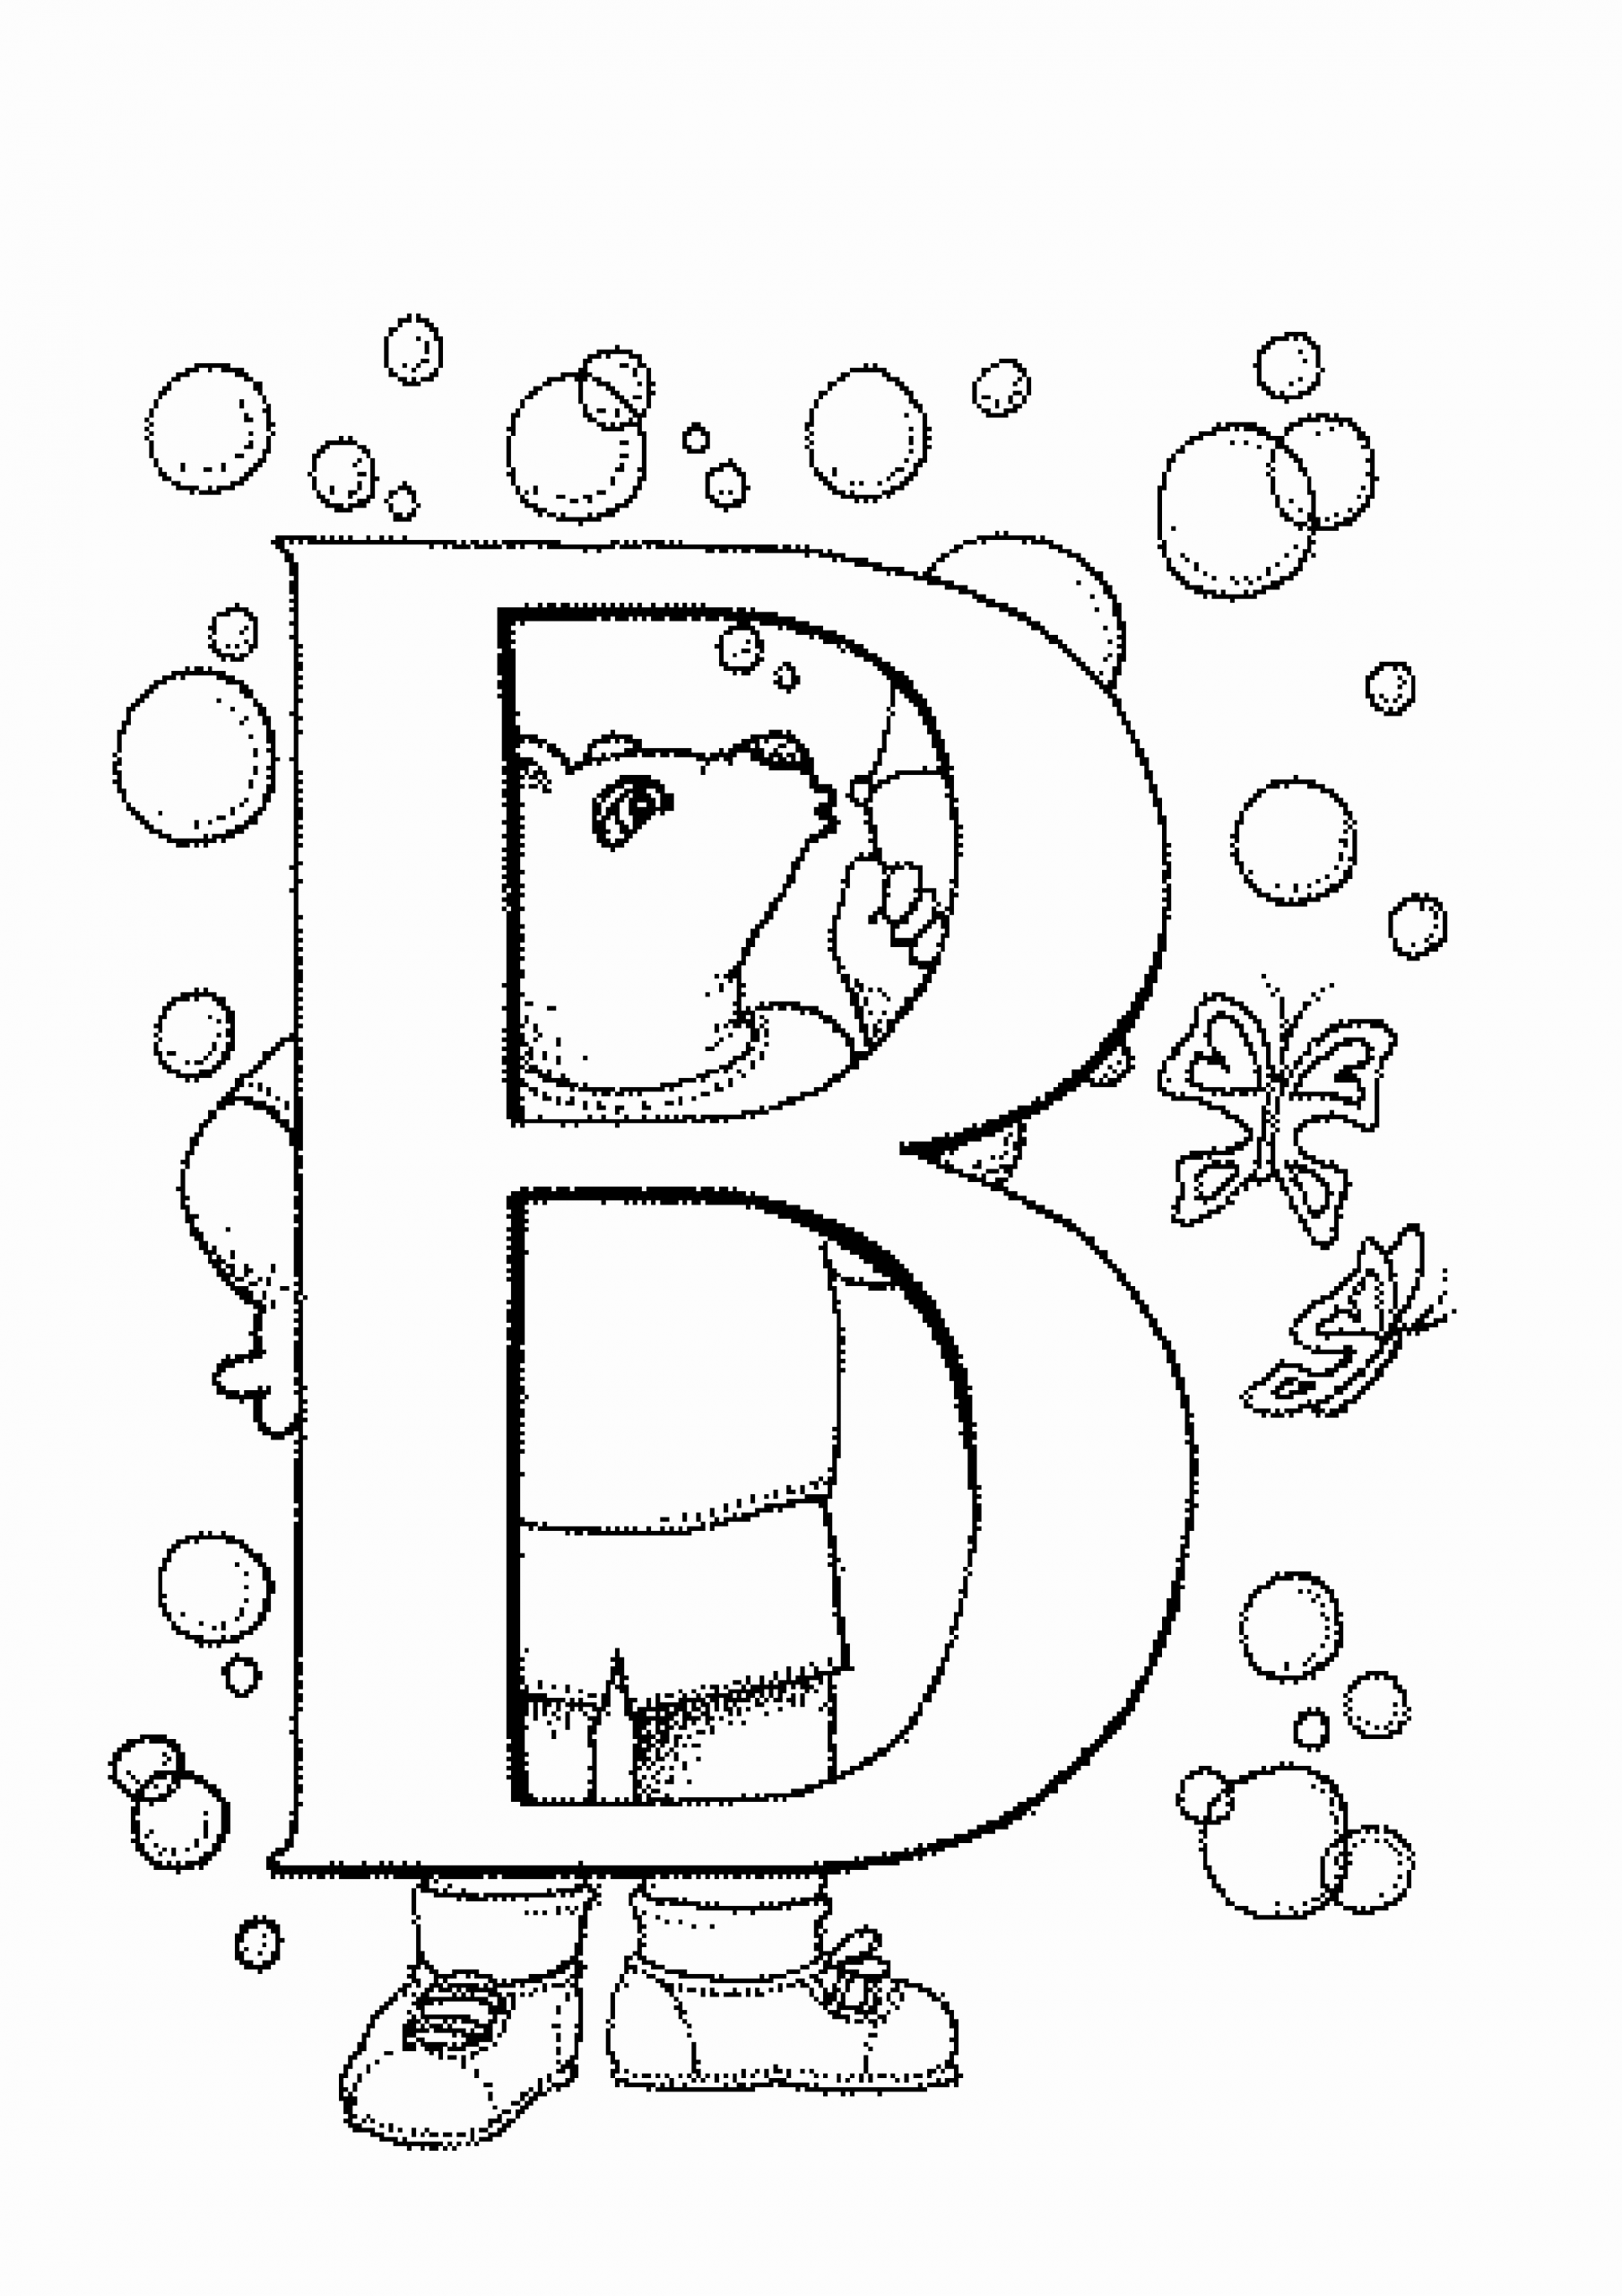 Free Printable Animal Coloring Pages For Kids Alphabetical In 2020 Abc Coloring Pages Abc Coloring Alphabet Coloring Pages